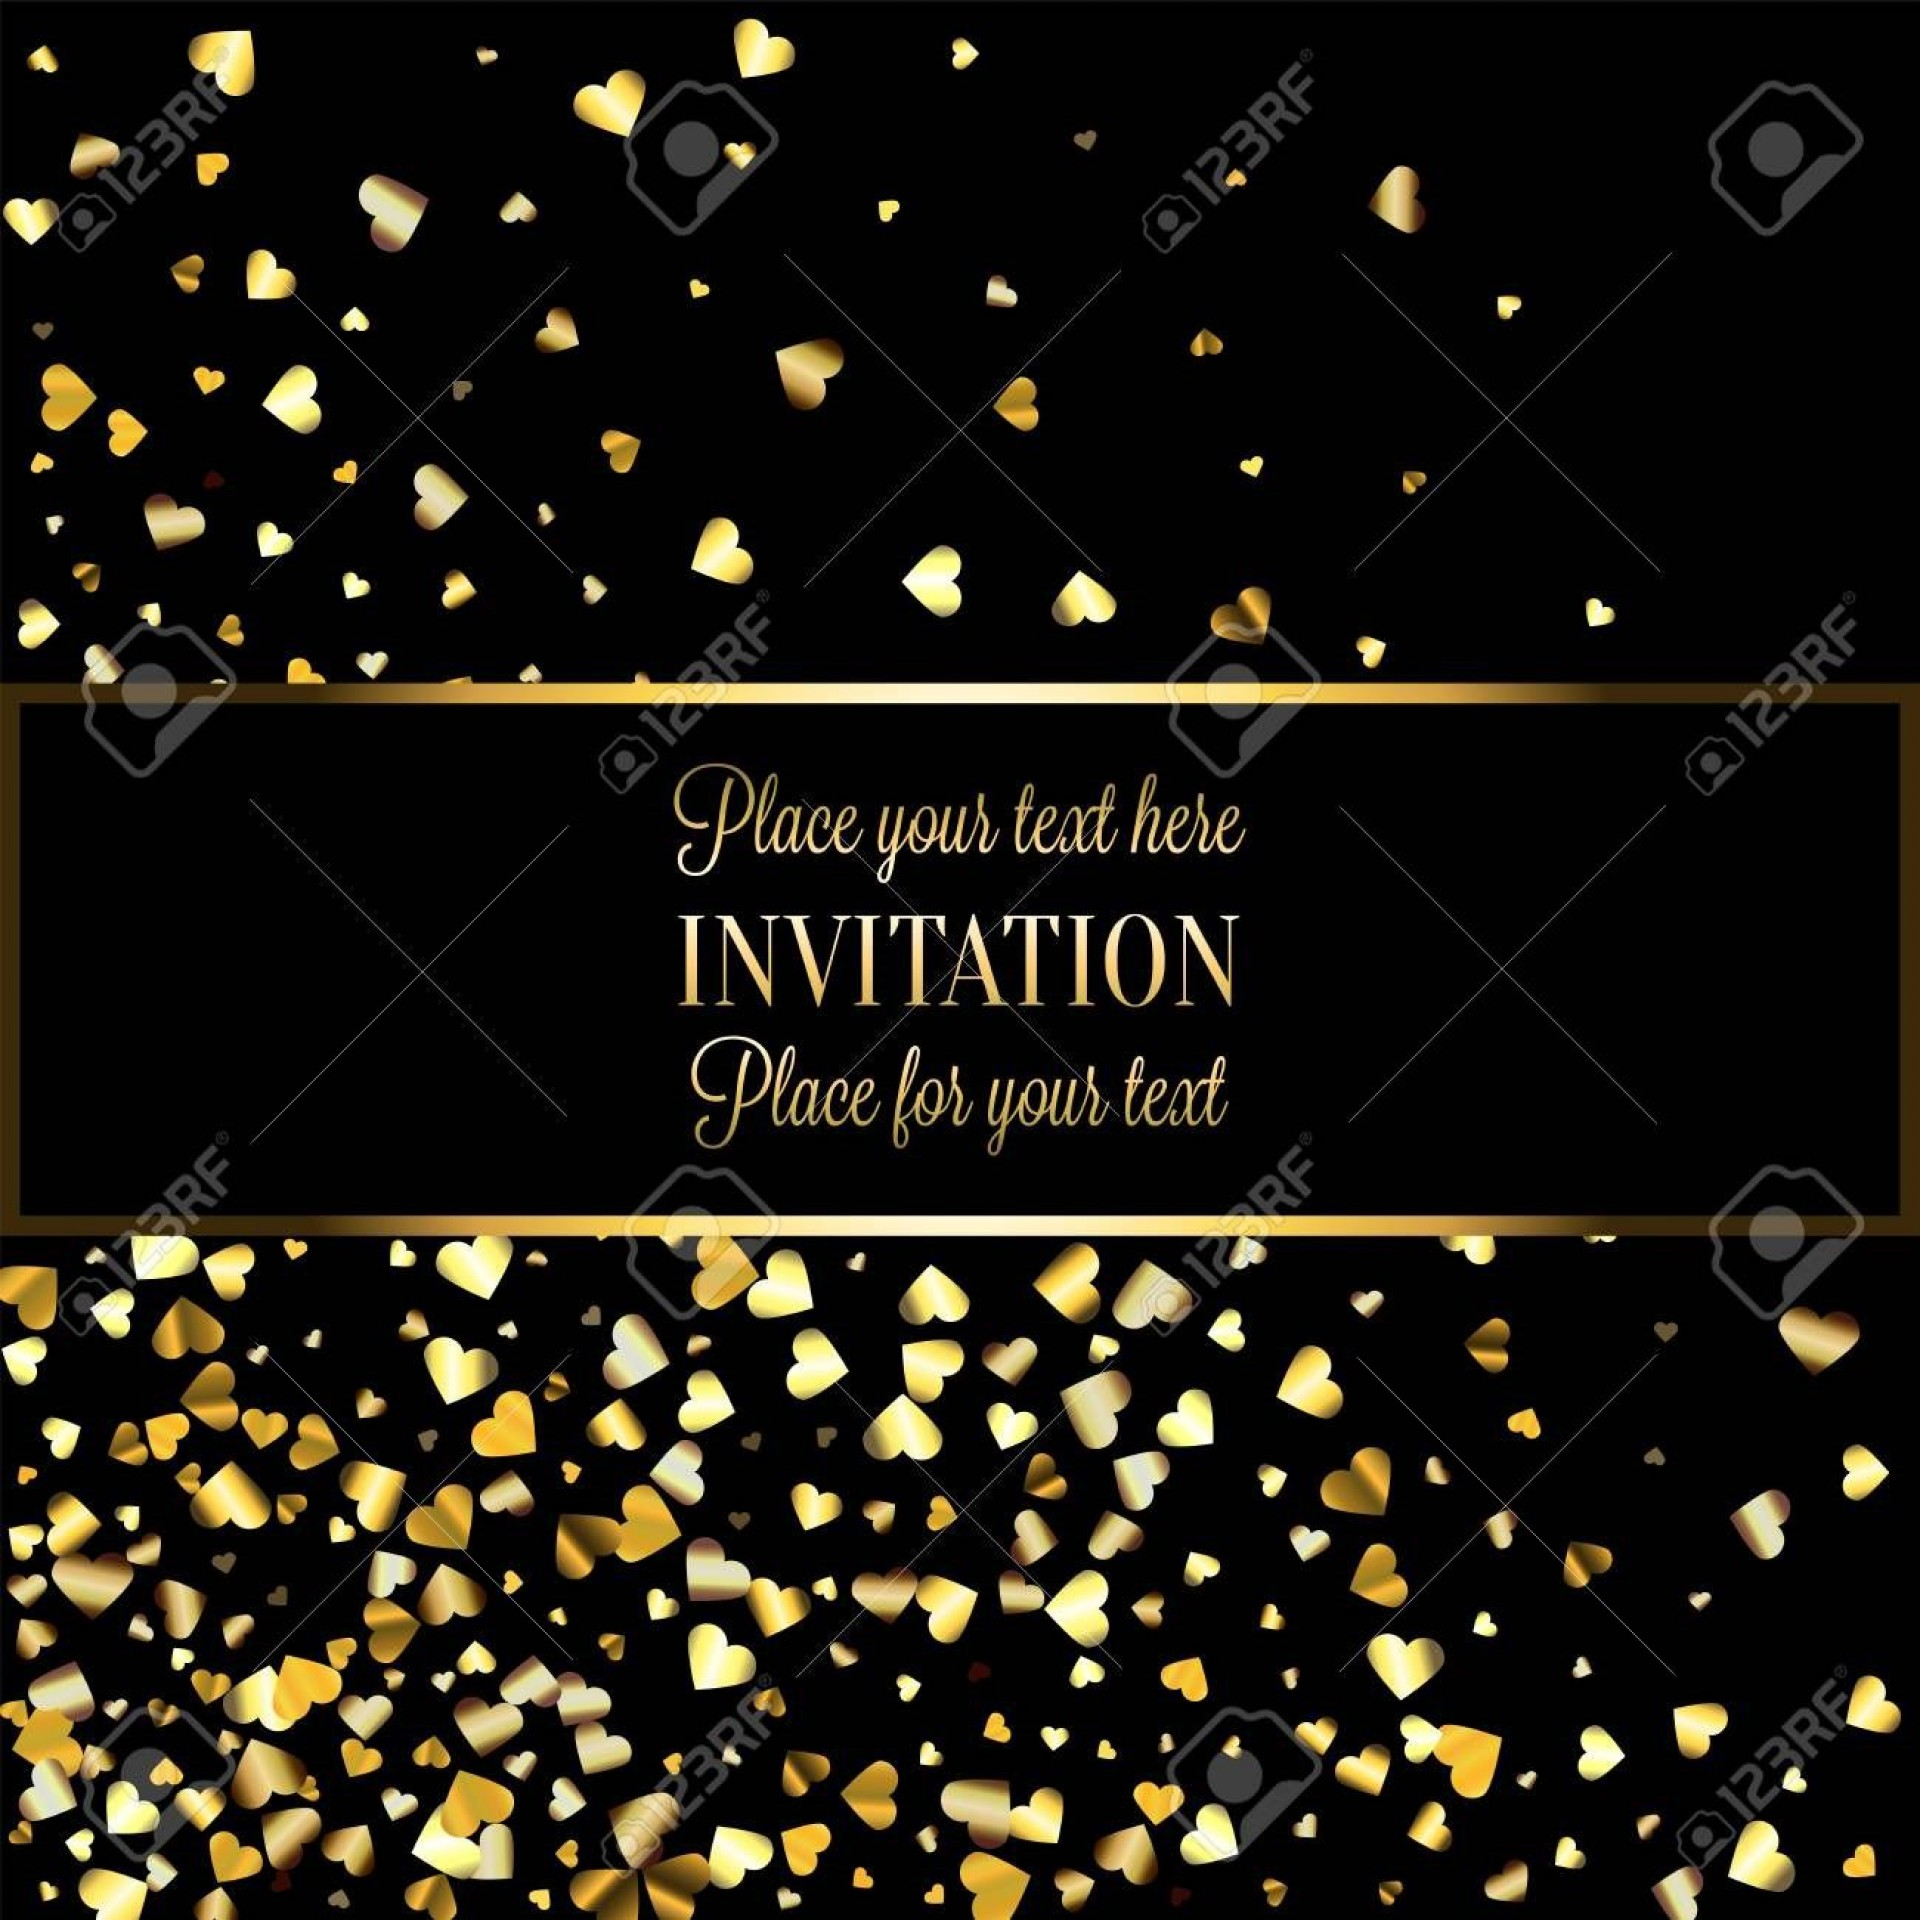 005 Dreaded Black And Gold Invitation Template Highest Quality  Design White Free Printable1920